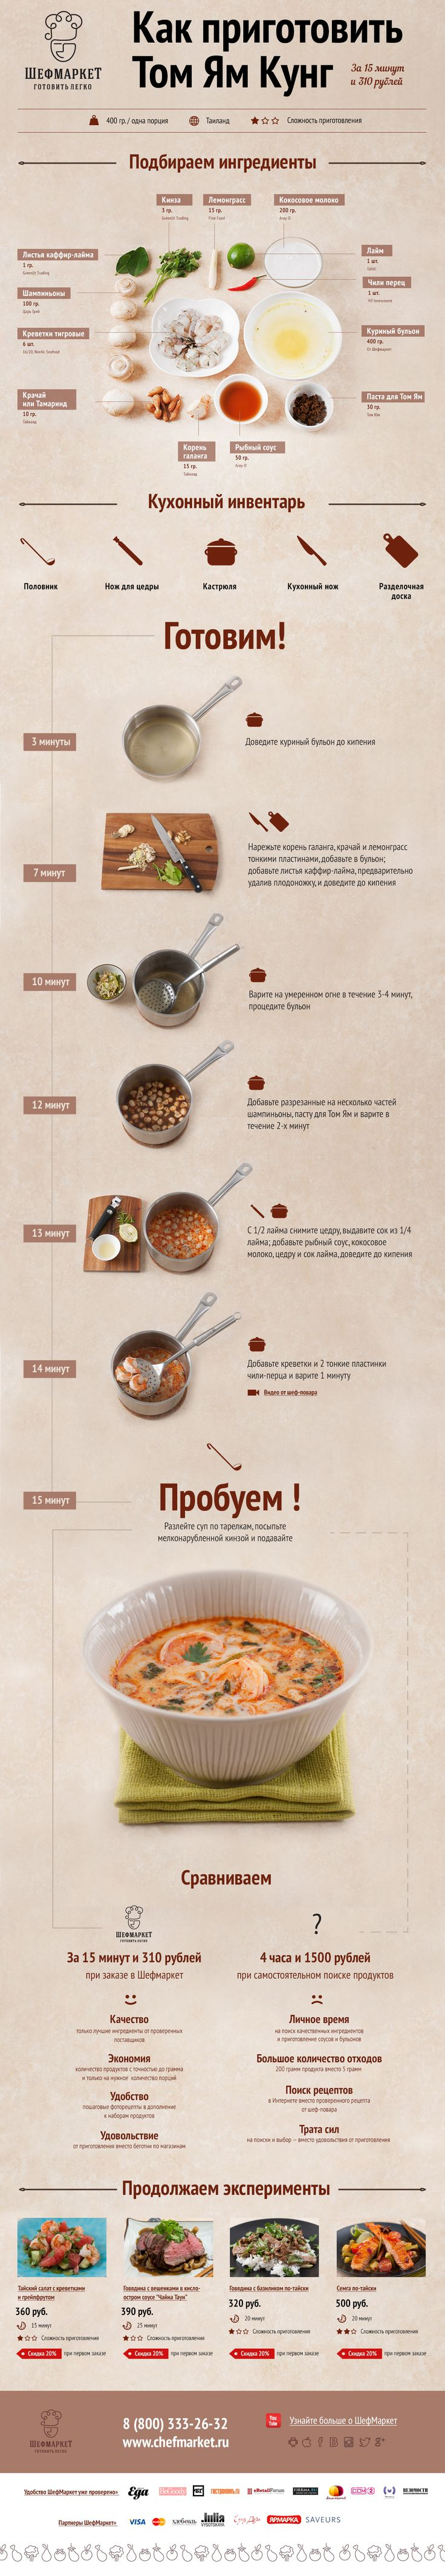 How to cook Tom yum in 15 minutes on Behance